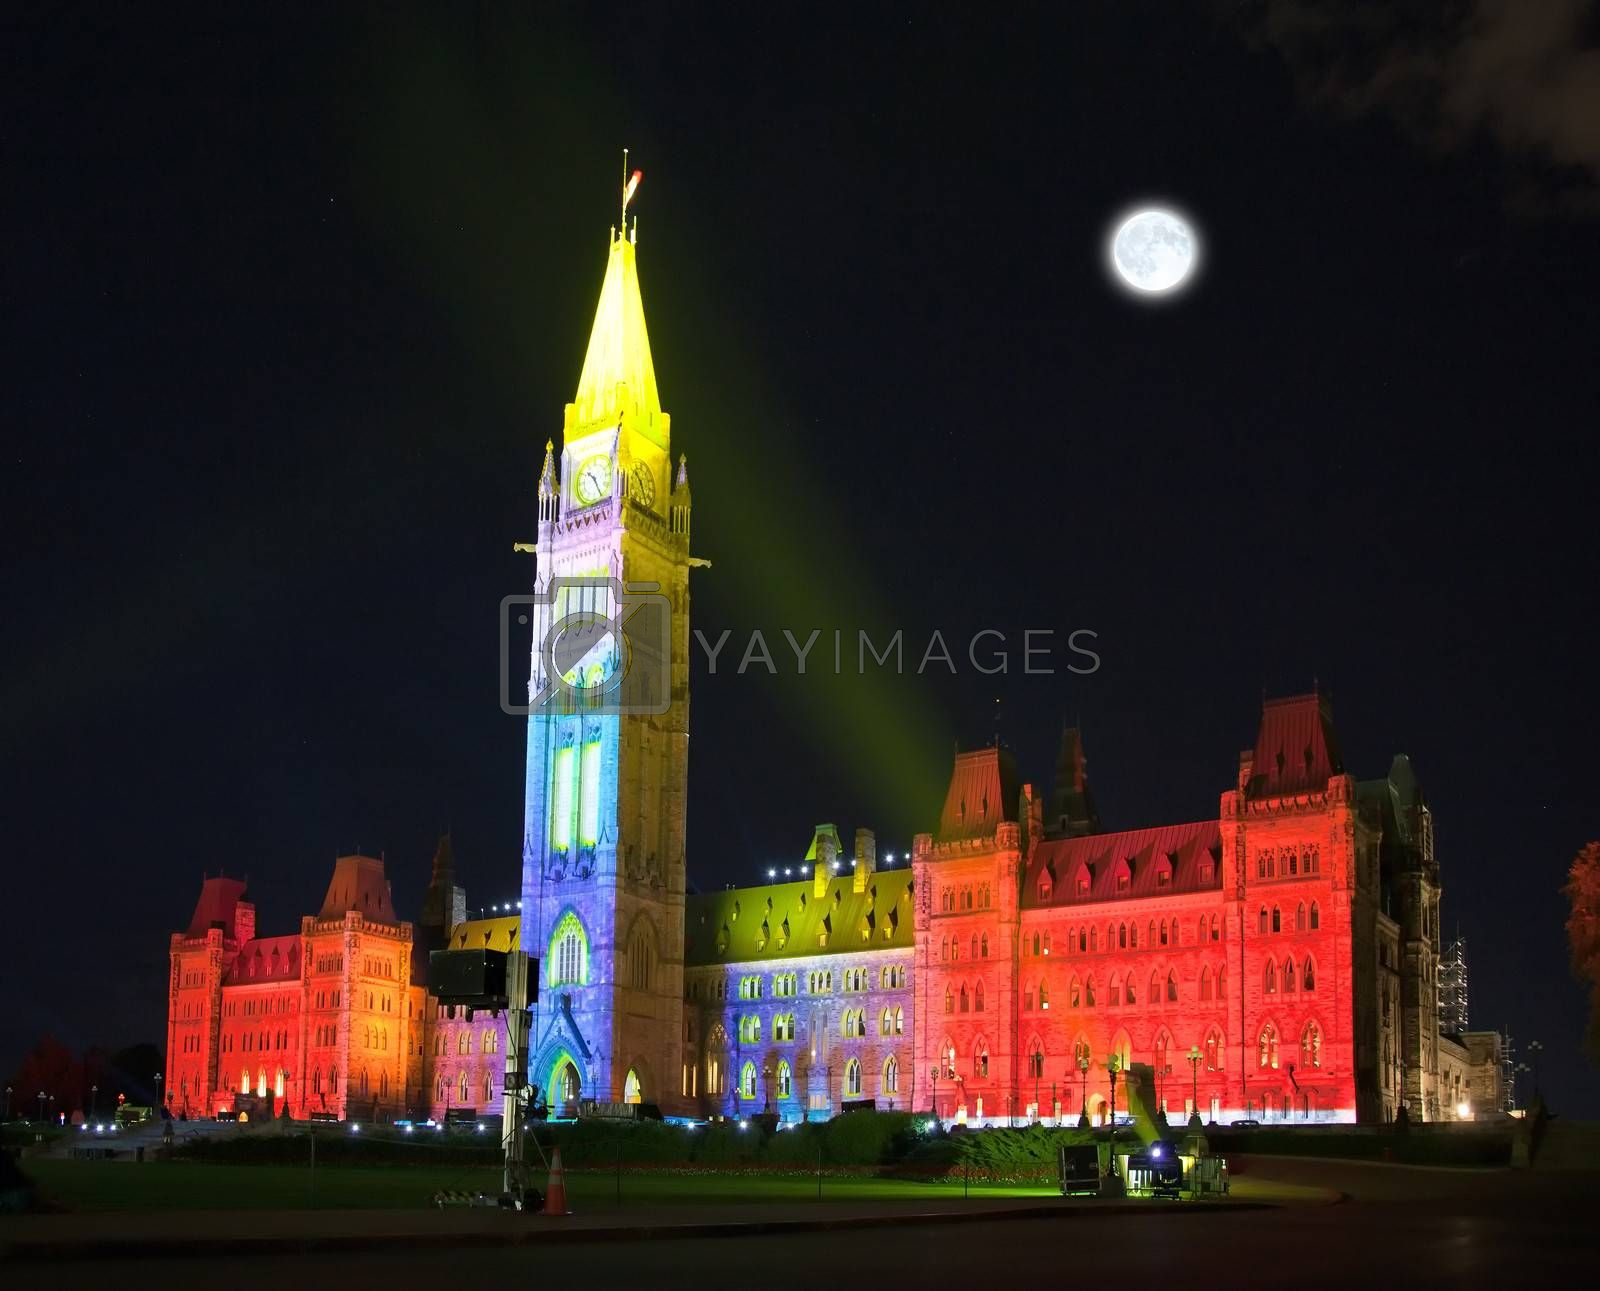 The beautiful illumination of the Canadian House of Parliament at night